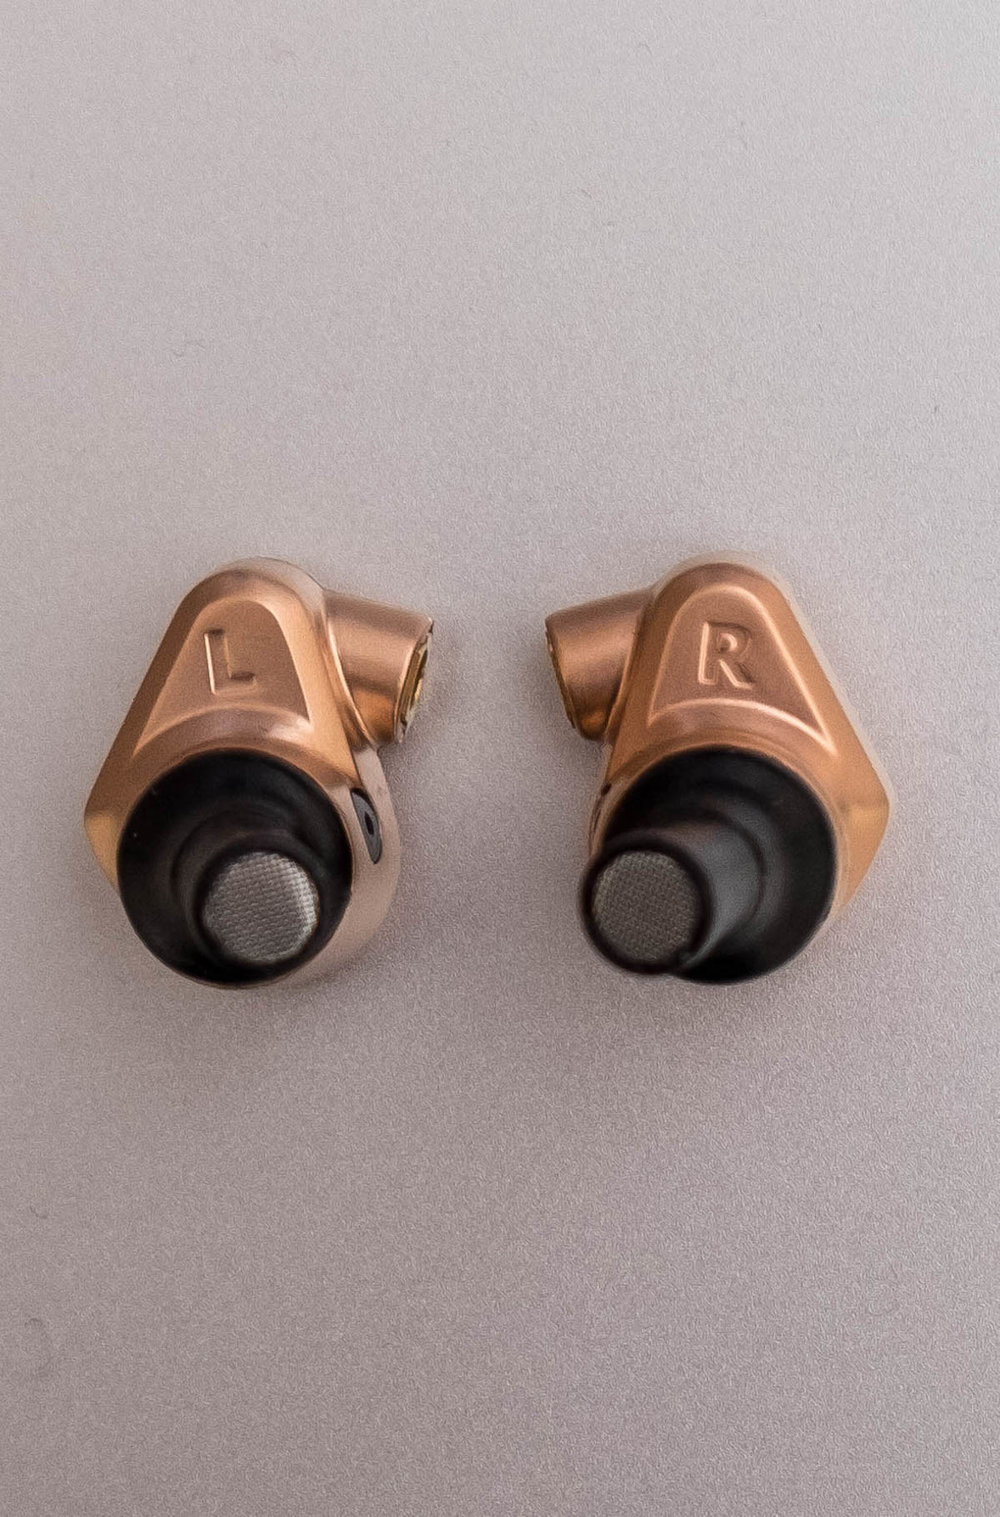 Both earphones are clearly identified via the L+R (left and right) markers.  Picture taken with cable detatched from earbud housing.